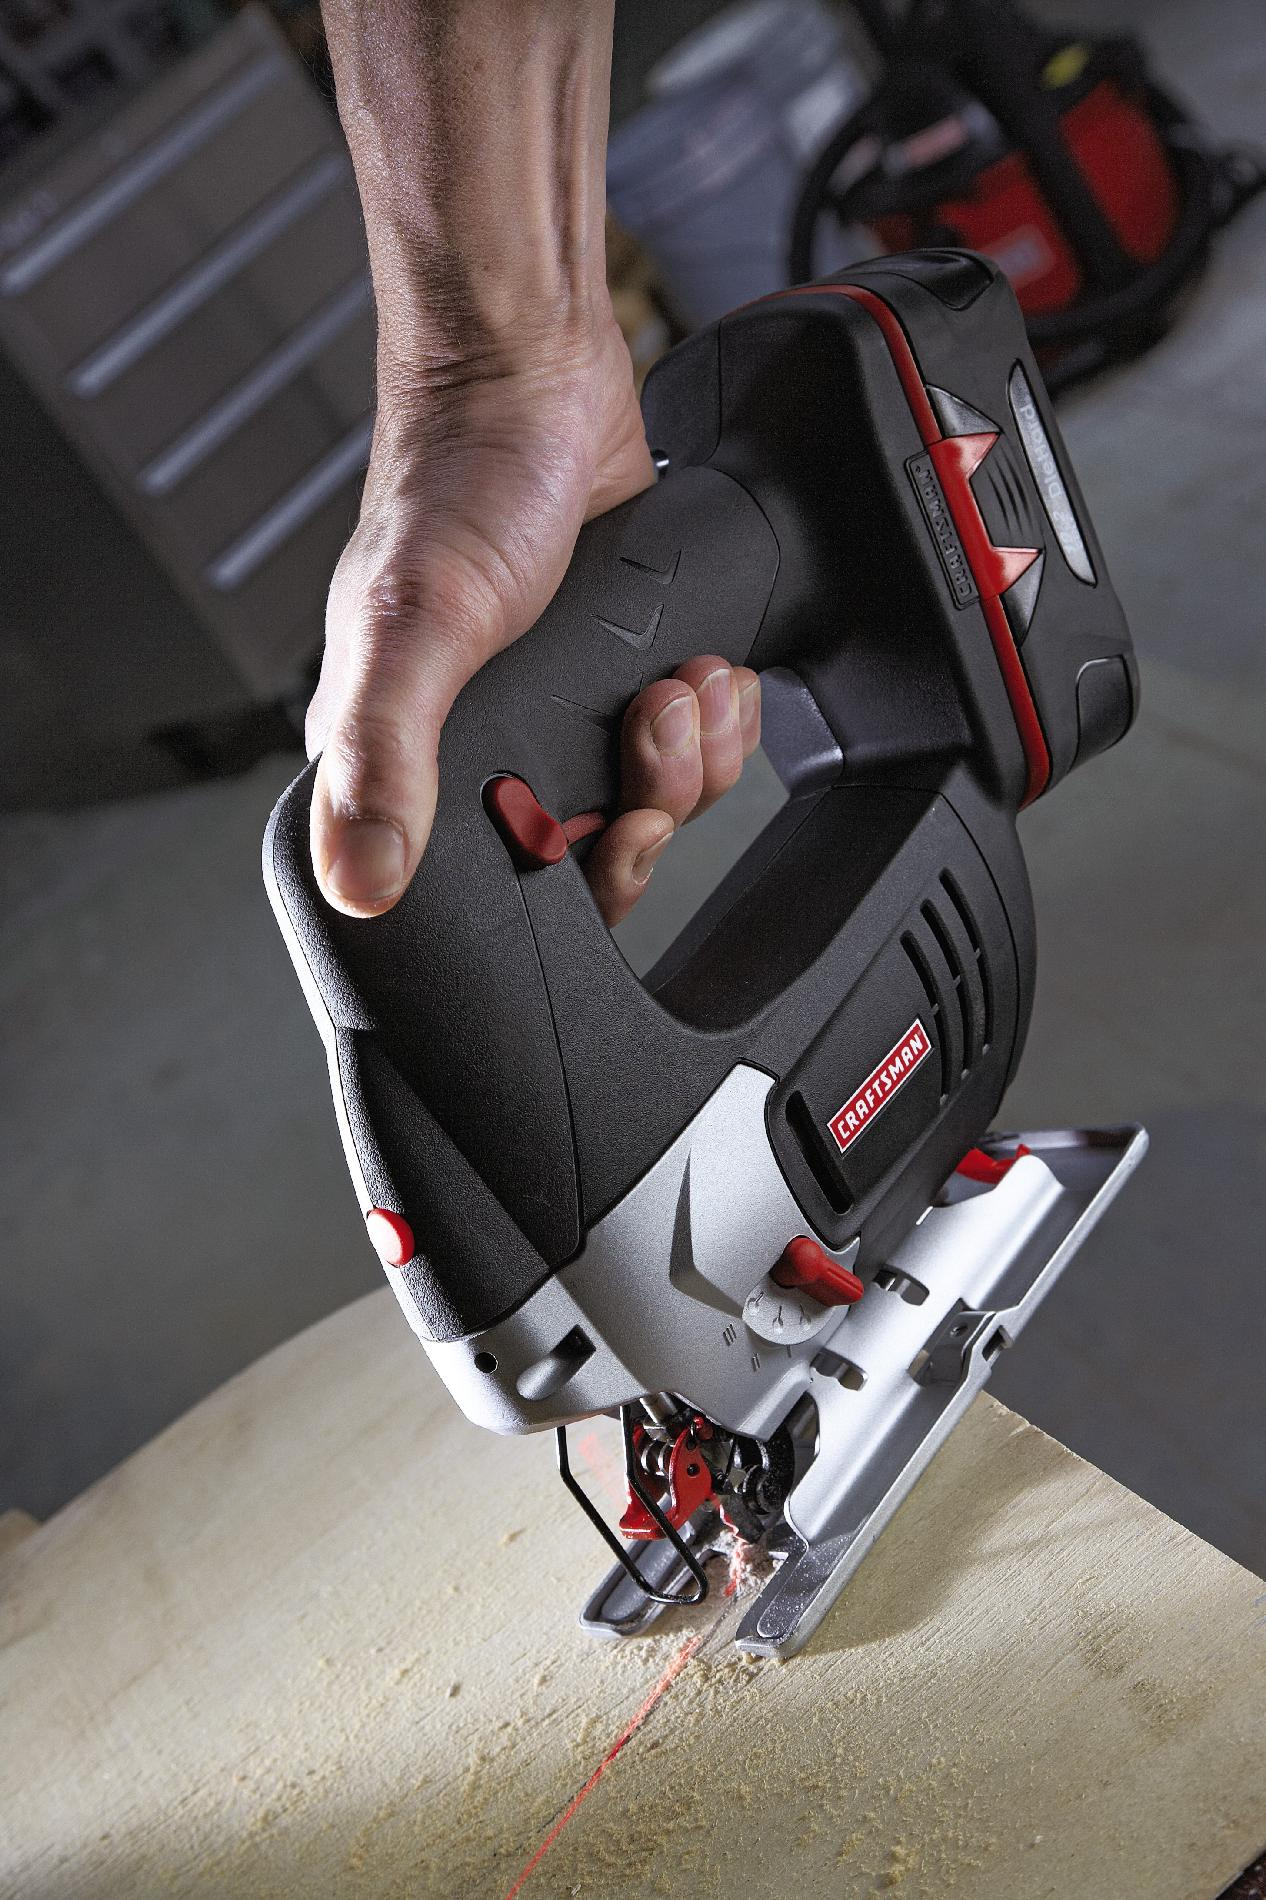 Craftsman C3 19.2-Volt Jig Saw with Laser Trac